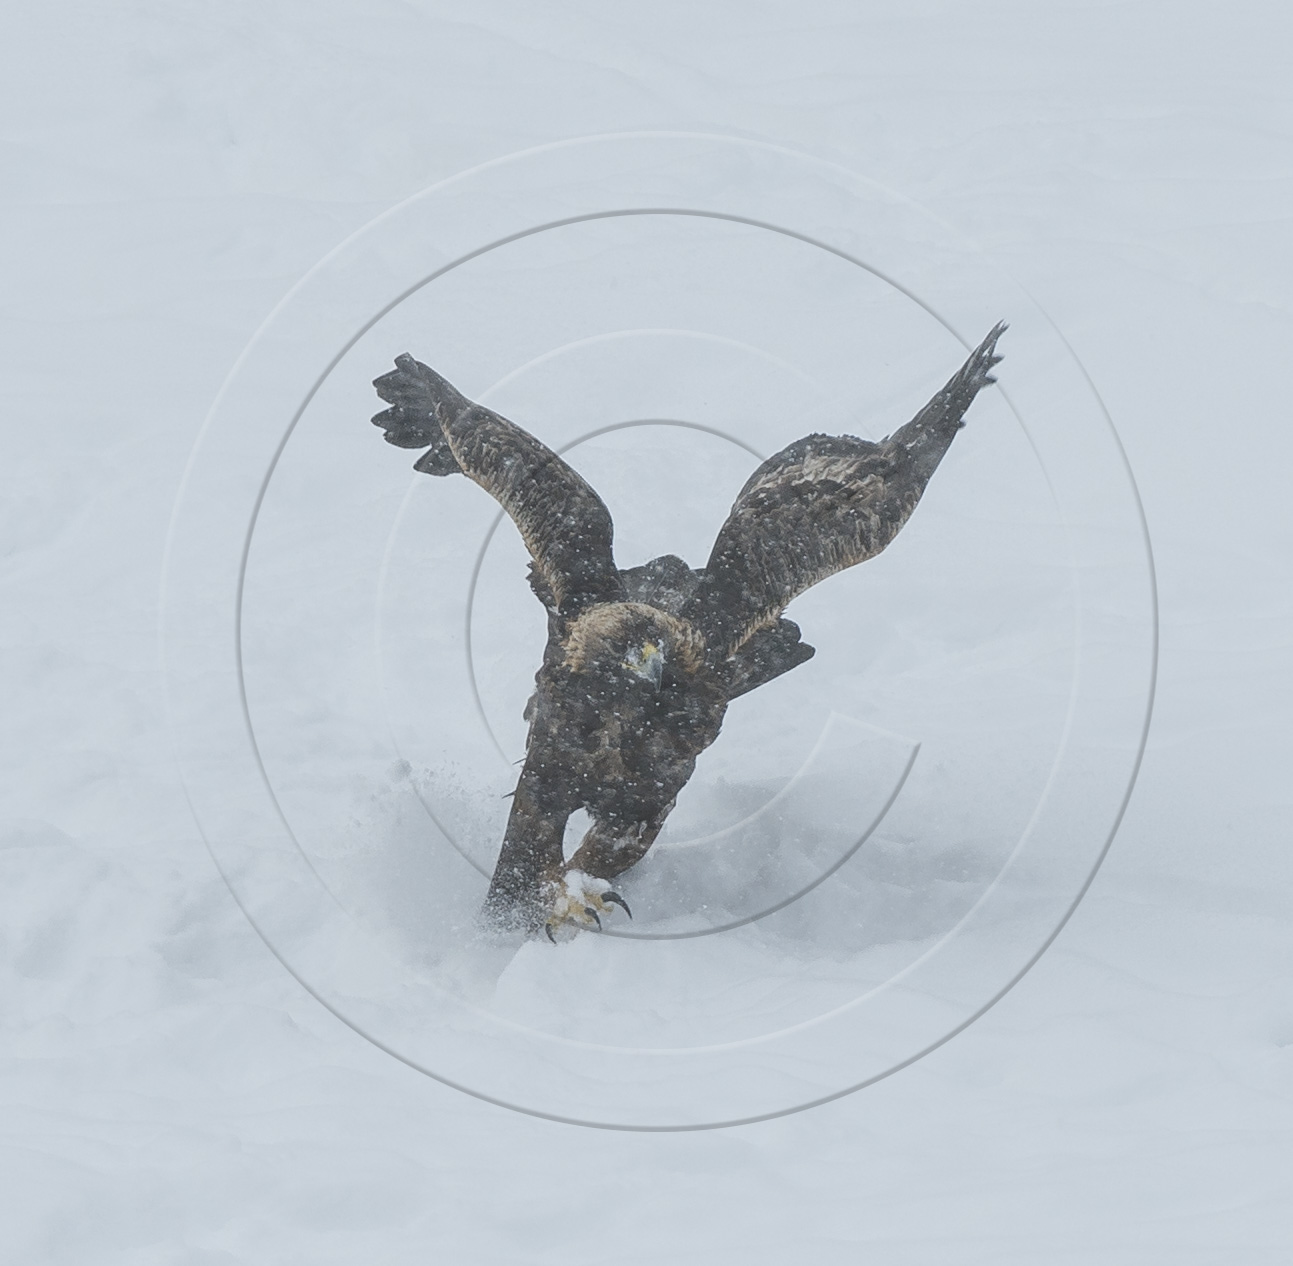 GOLDEN EAGLE FLIGHT LANDING-1